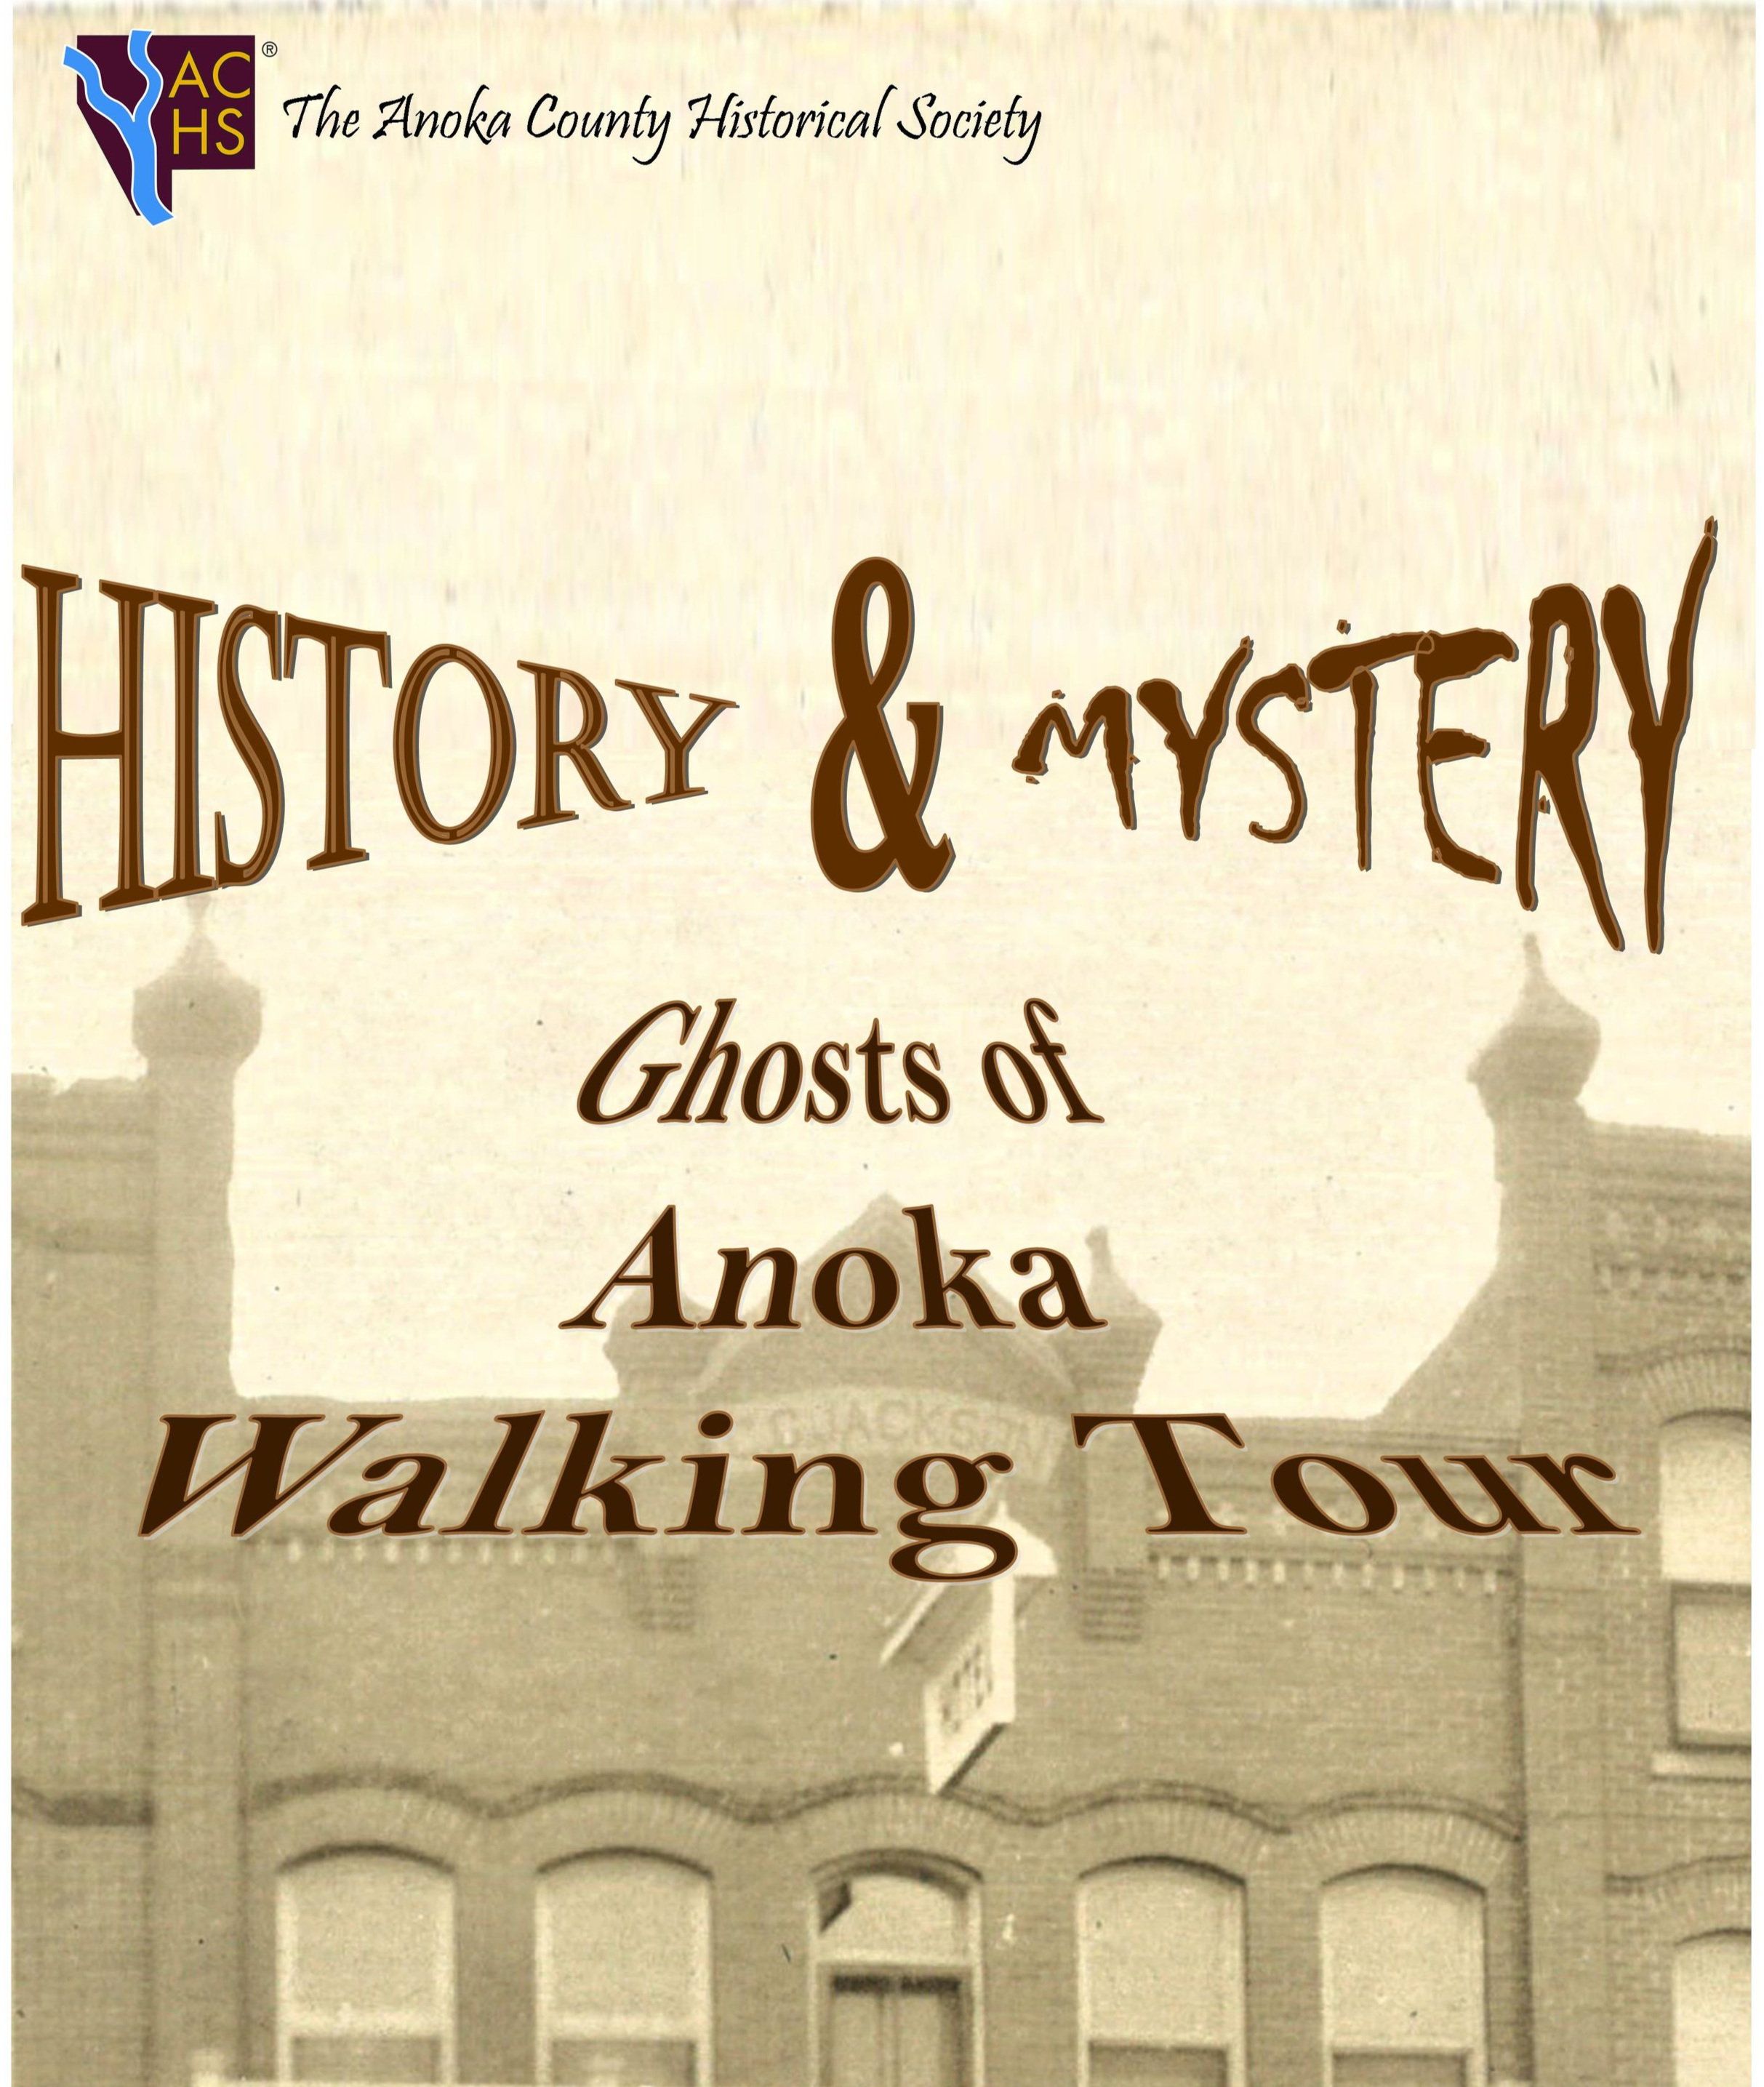 Ghosts of Anoka Walking Tour - Stories abound in Anoka of odd happenings and eerie encounters. Our costumed tour guides will take you on a walk through historic neighborhoods of Anoka, sharing stories of the past along the way.Sixty percent history, 40 percent folklore; these stories are just part of the fun you will experience on your Ghosts of Anoka tour!Schedule a private tour for your group of 15-25 or join the the fun at our scheduled tours in September and October.